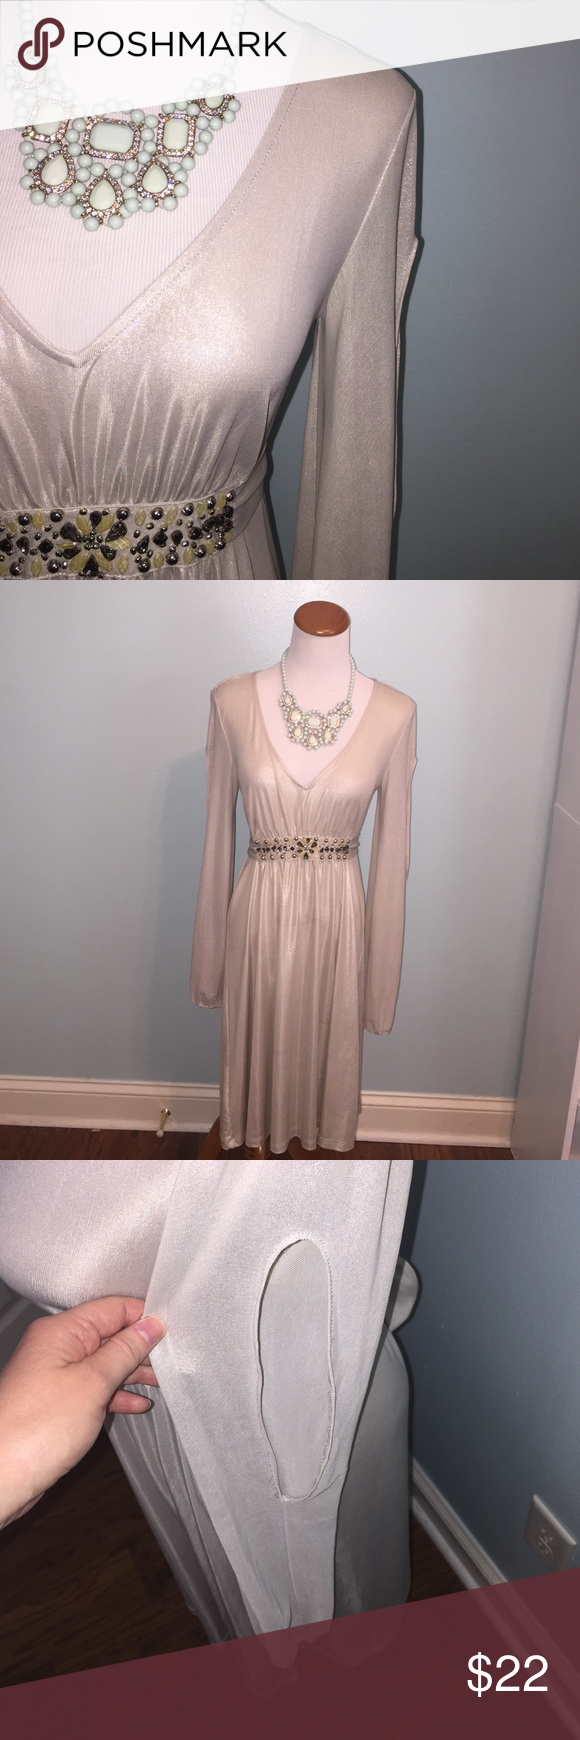 Gold shimmer dress Size S. Long sleeves with cutouts. Embellished belt ties in back. Cinching in back at waist. Polyester/spandex blend. ECI Dresses Midi